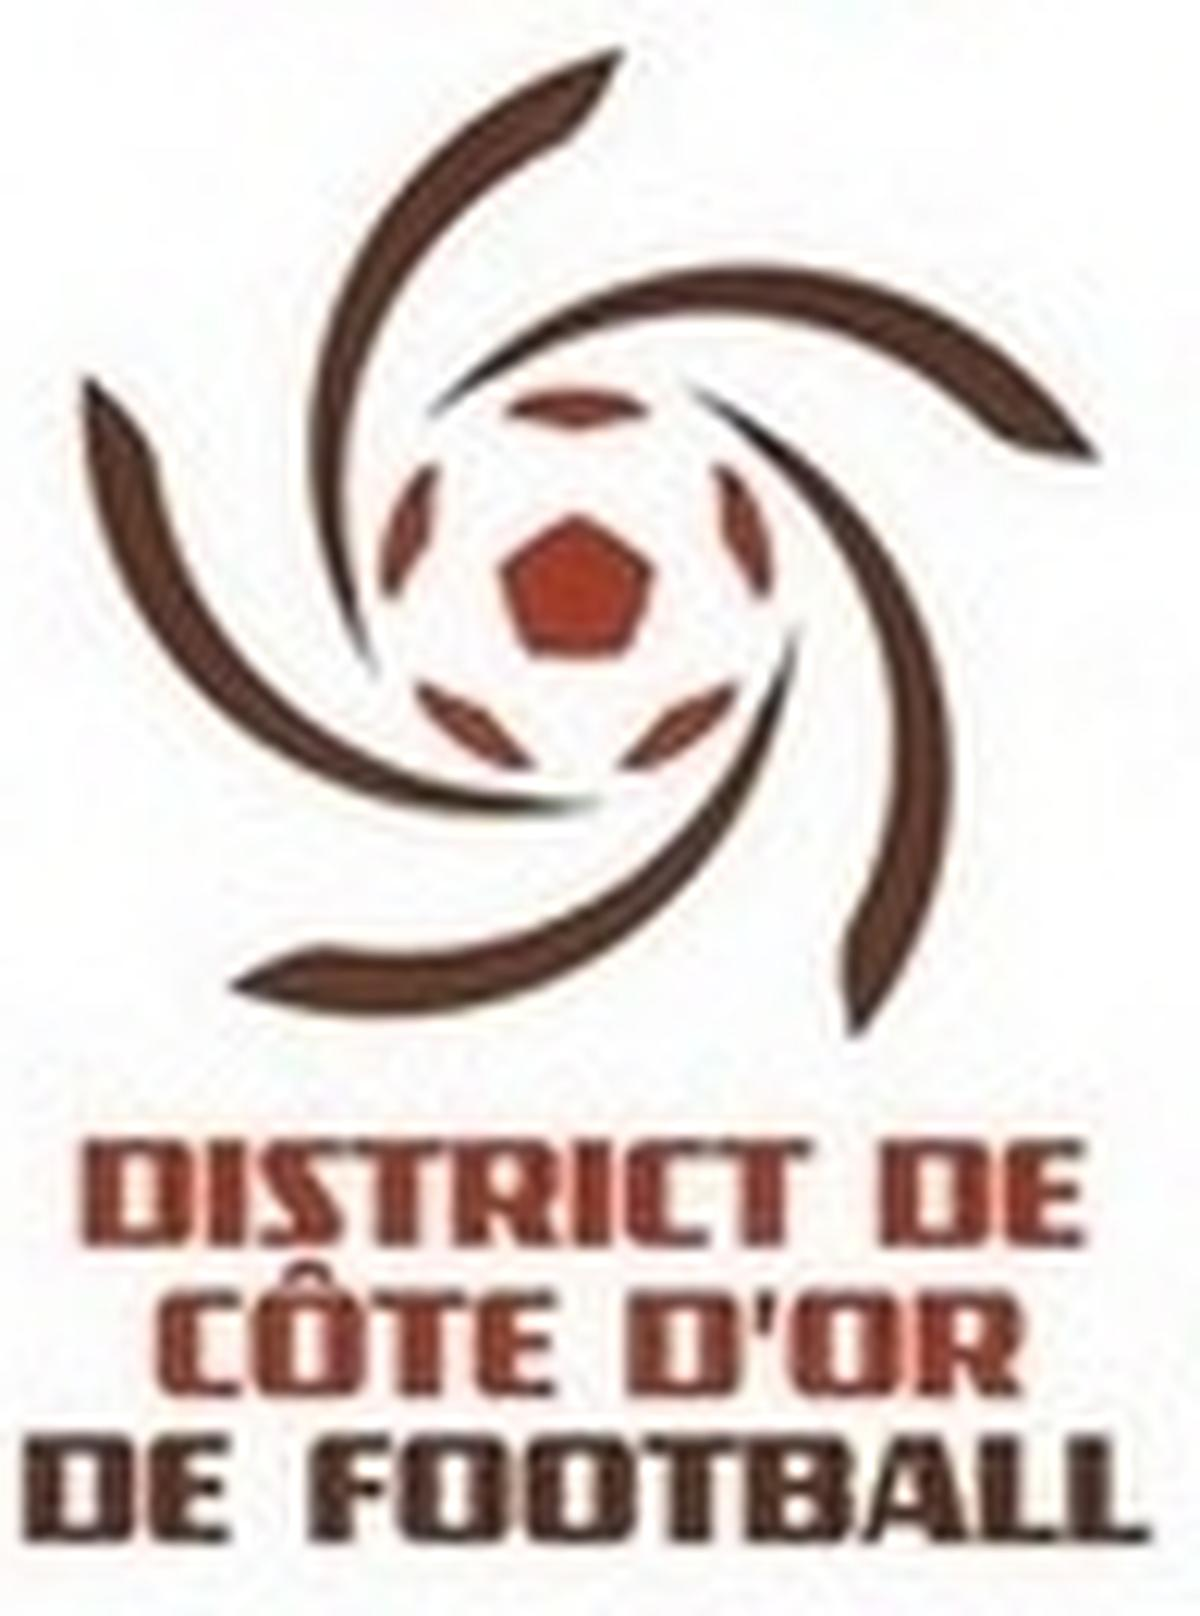 District de Côte d'or